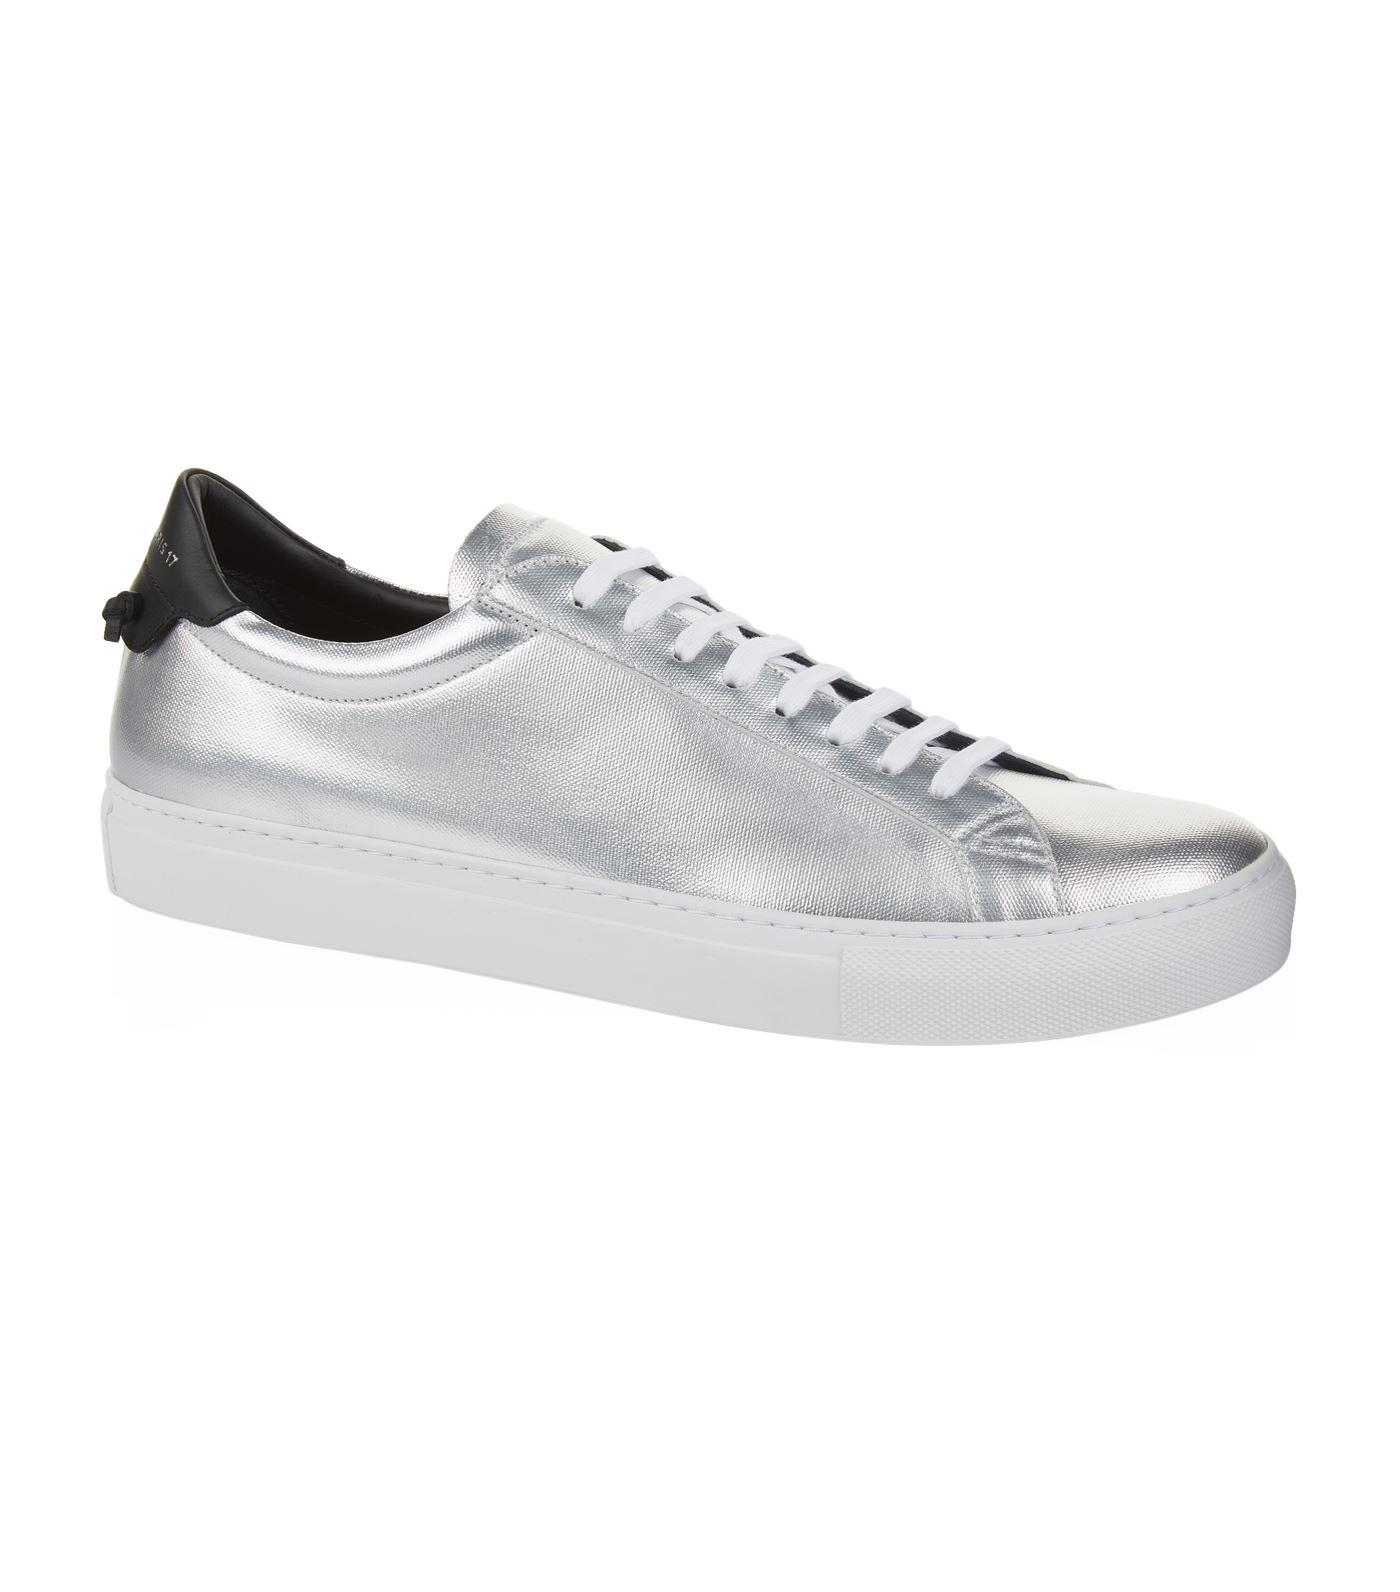 Givenchy Leather Urban Street Low-top